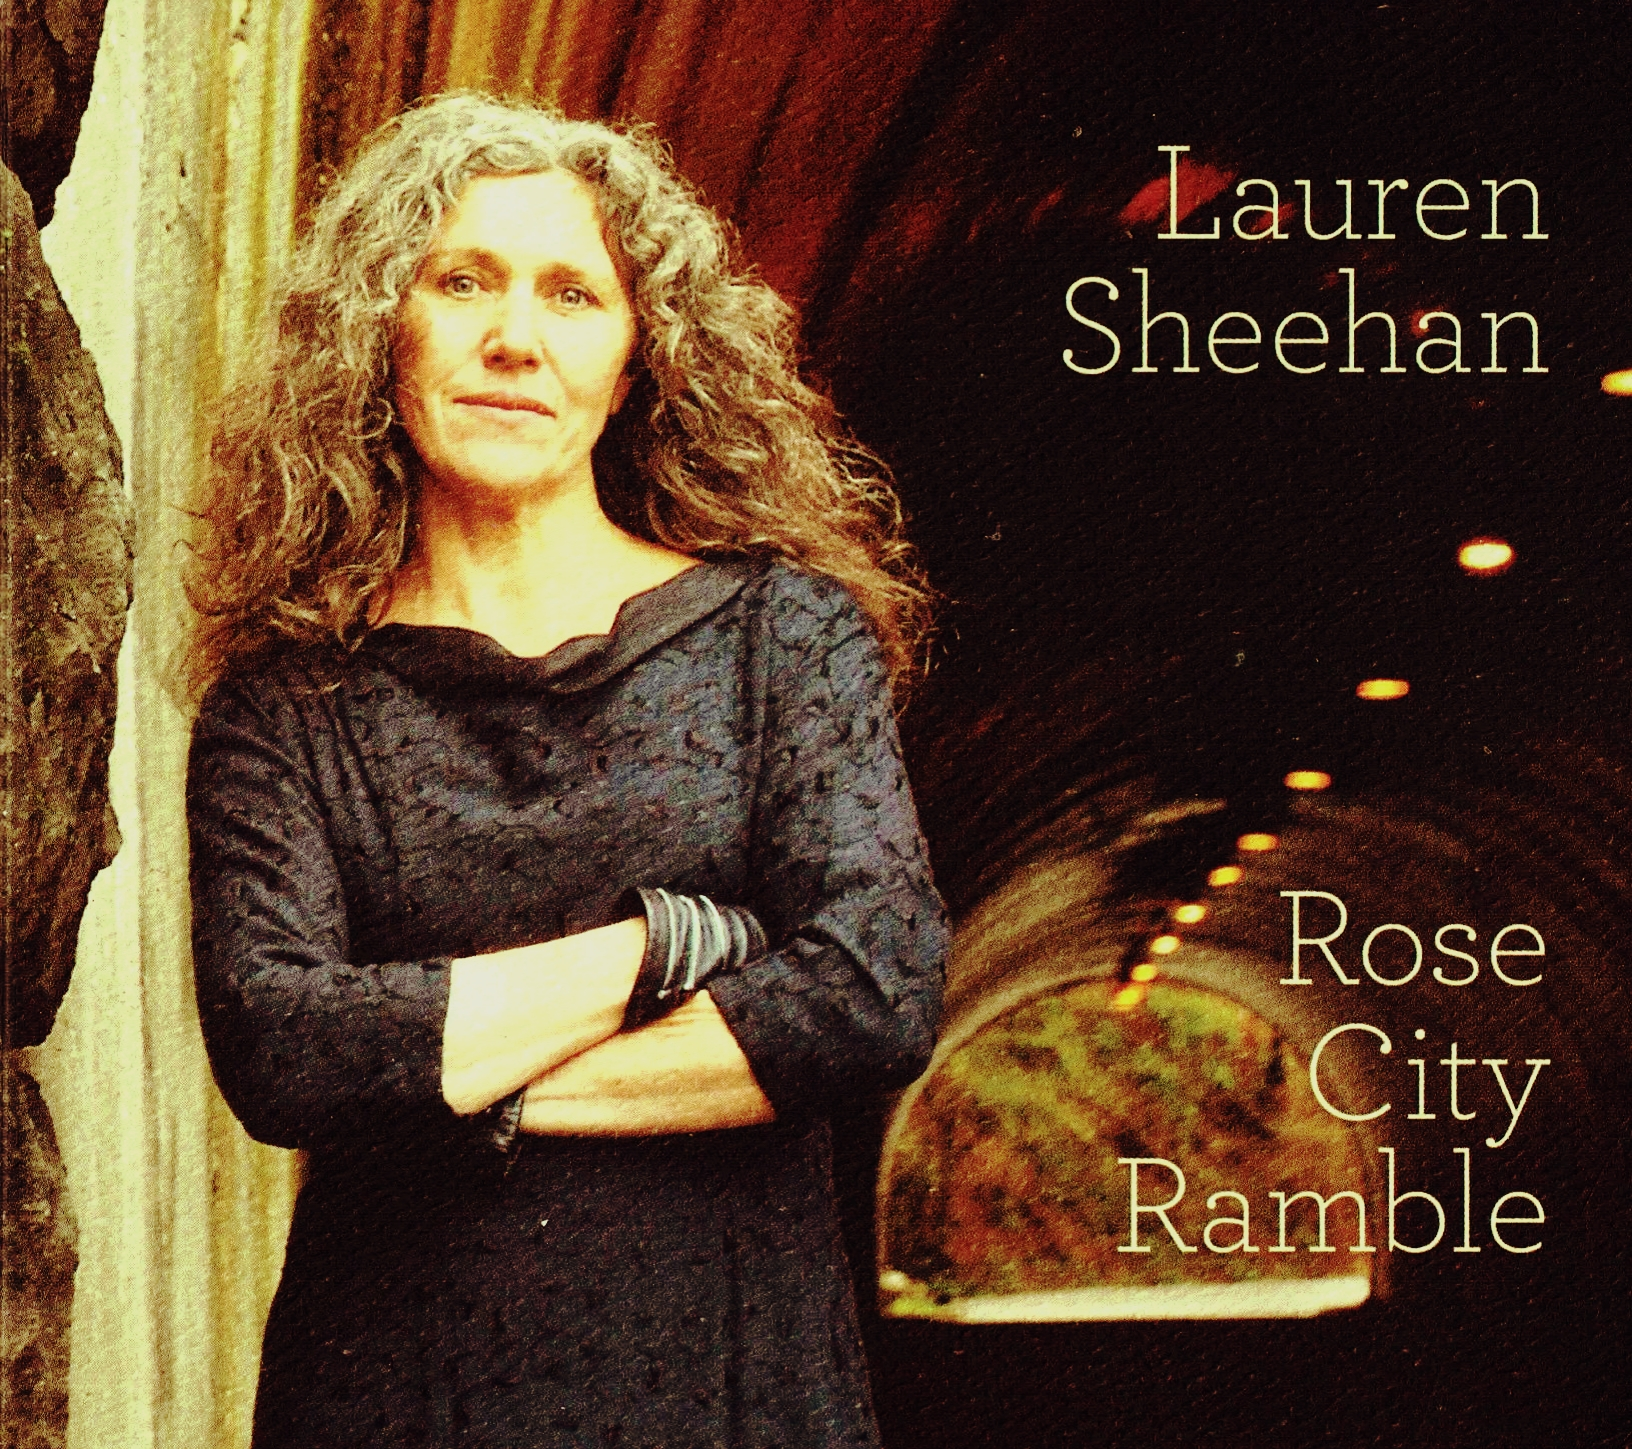 Lauren Sheehan, Rose City Ramble